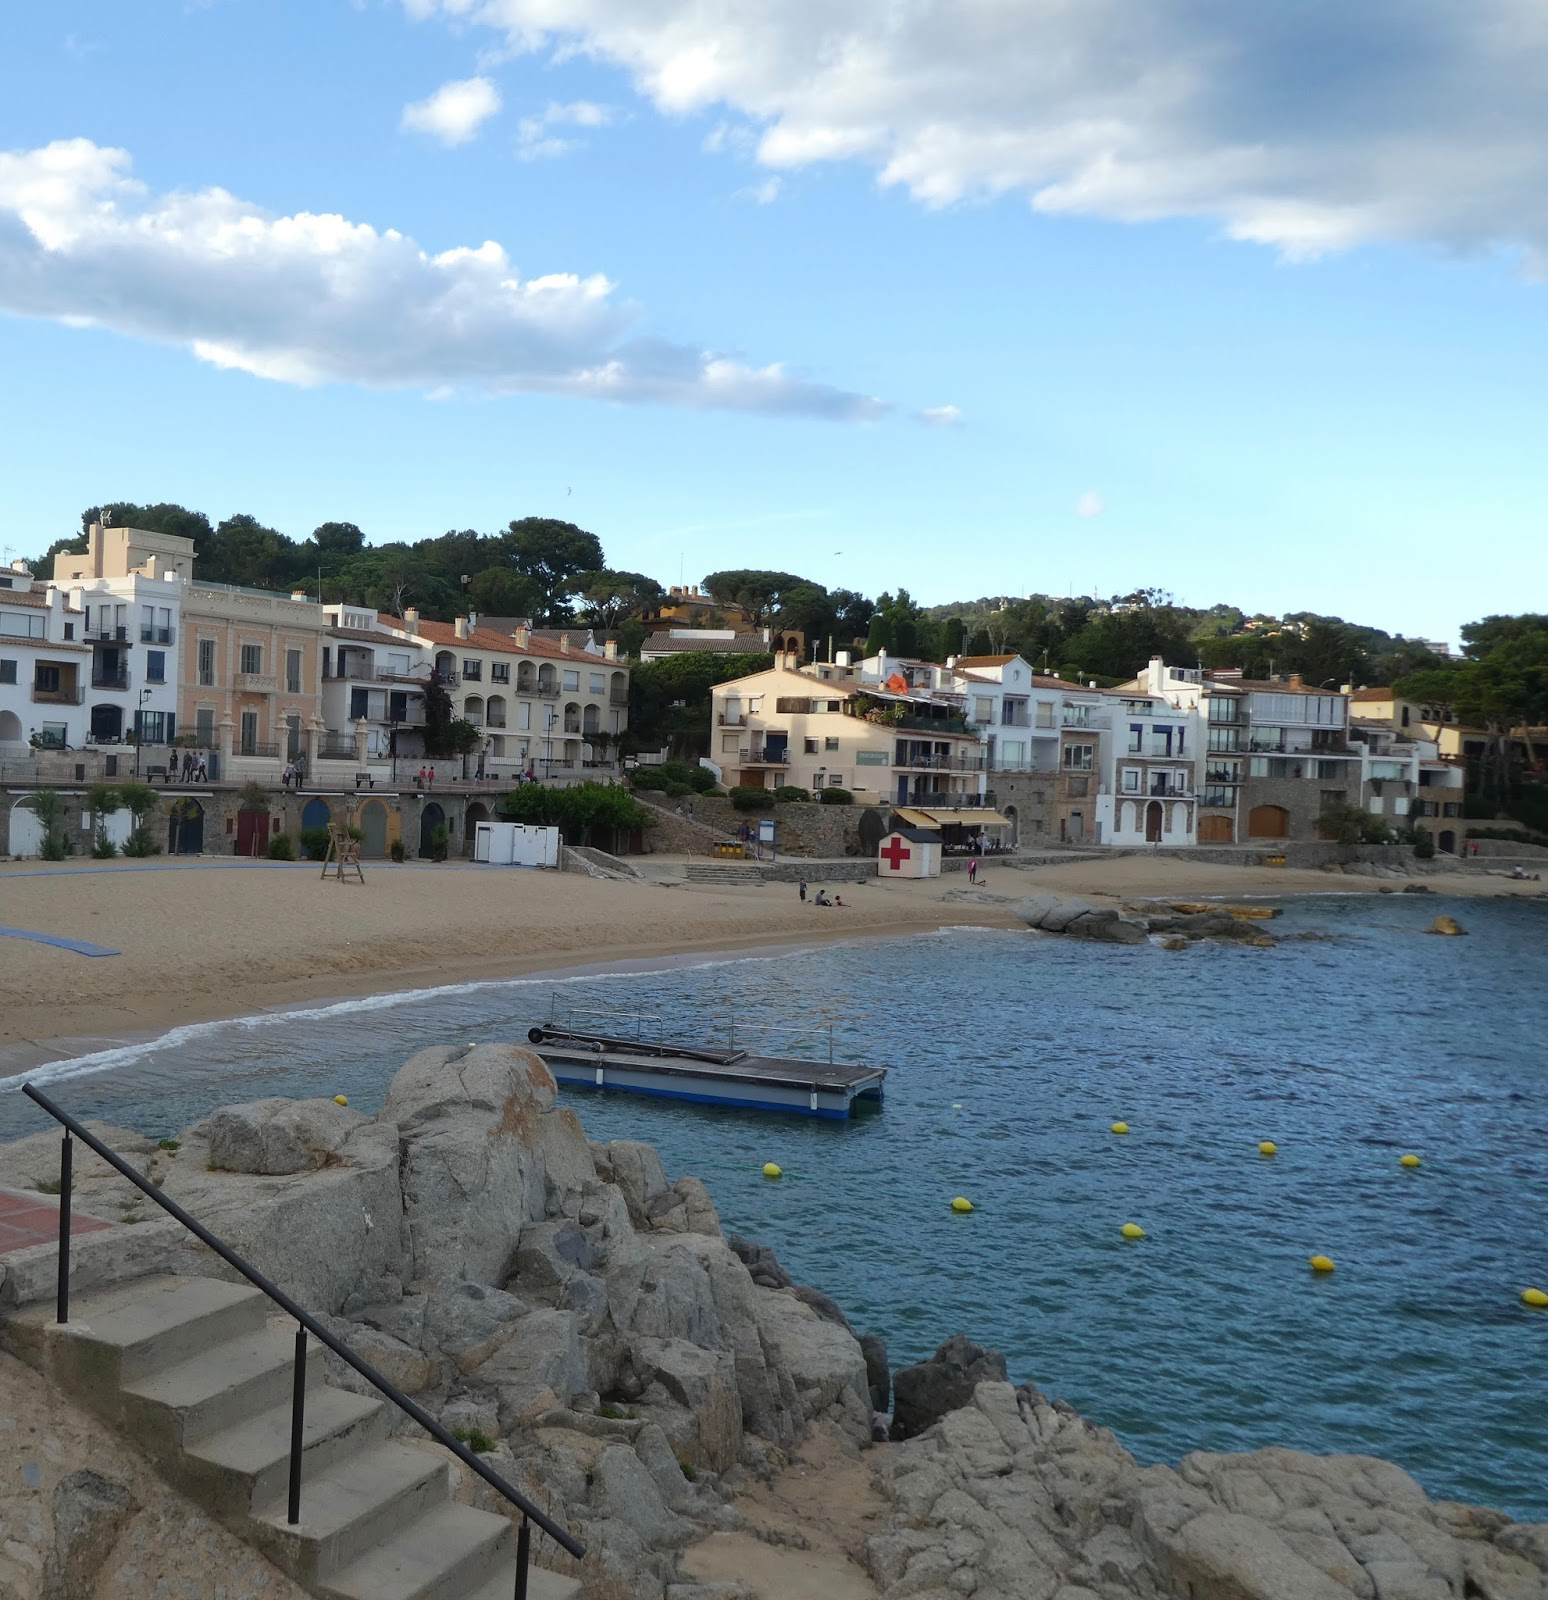 The beautiful coastal town of Calella de Palafrugell